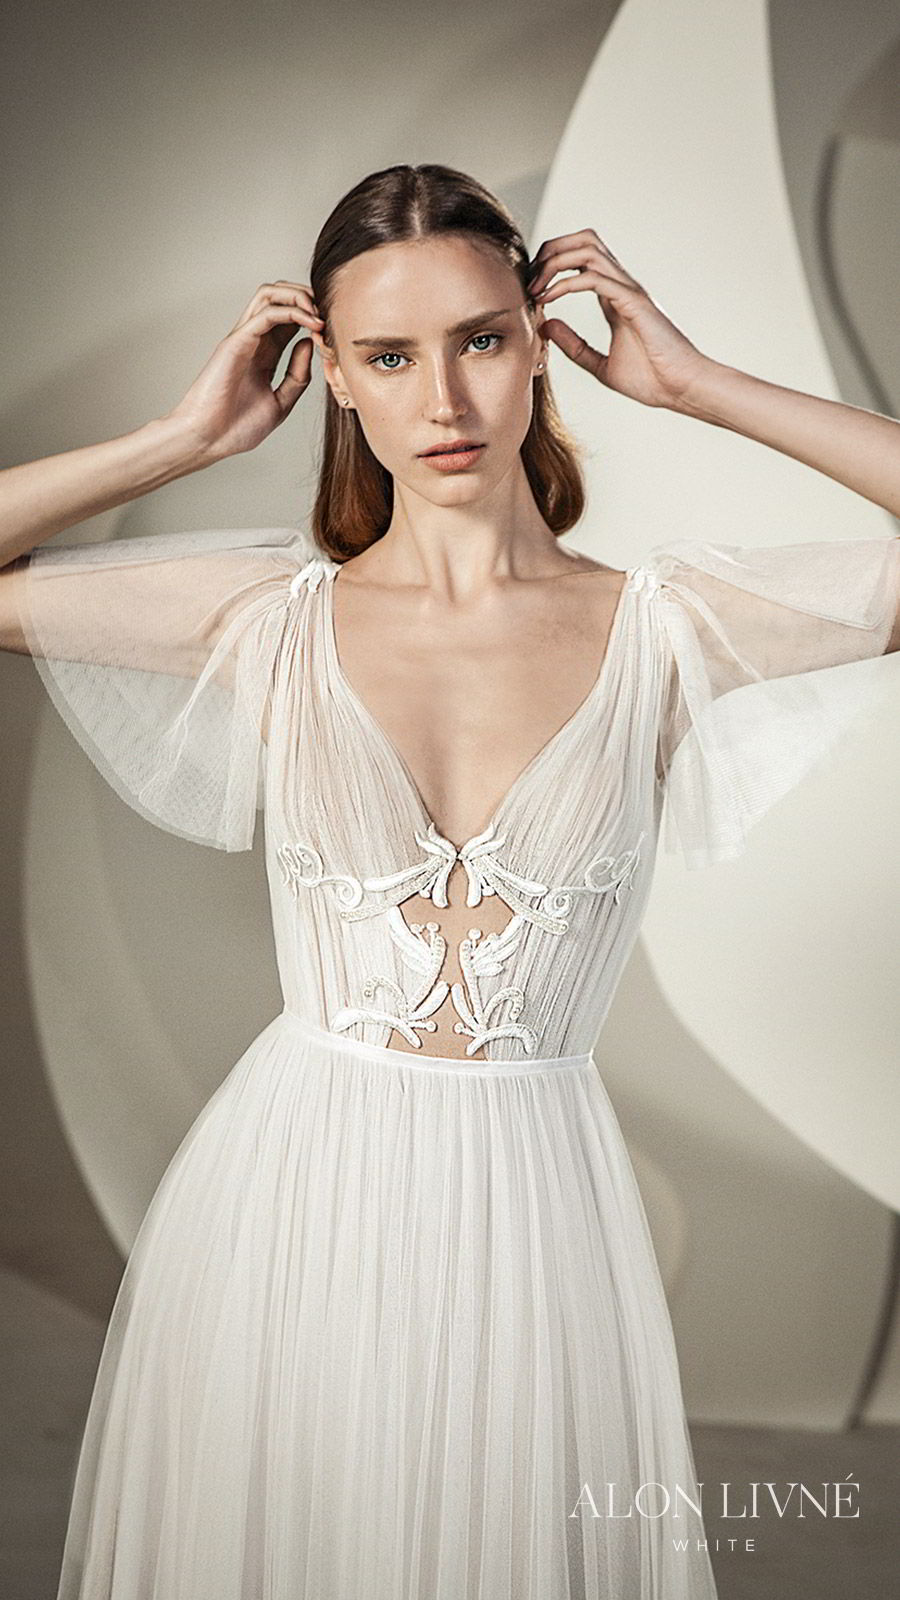 alon livne white spring 2020 bridal illusion short flutter sleeves deep v neckline cutout ruched bodice a line ball gown wedding dress (shane) romantic boho chic mv